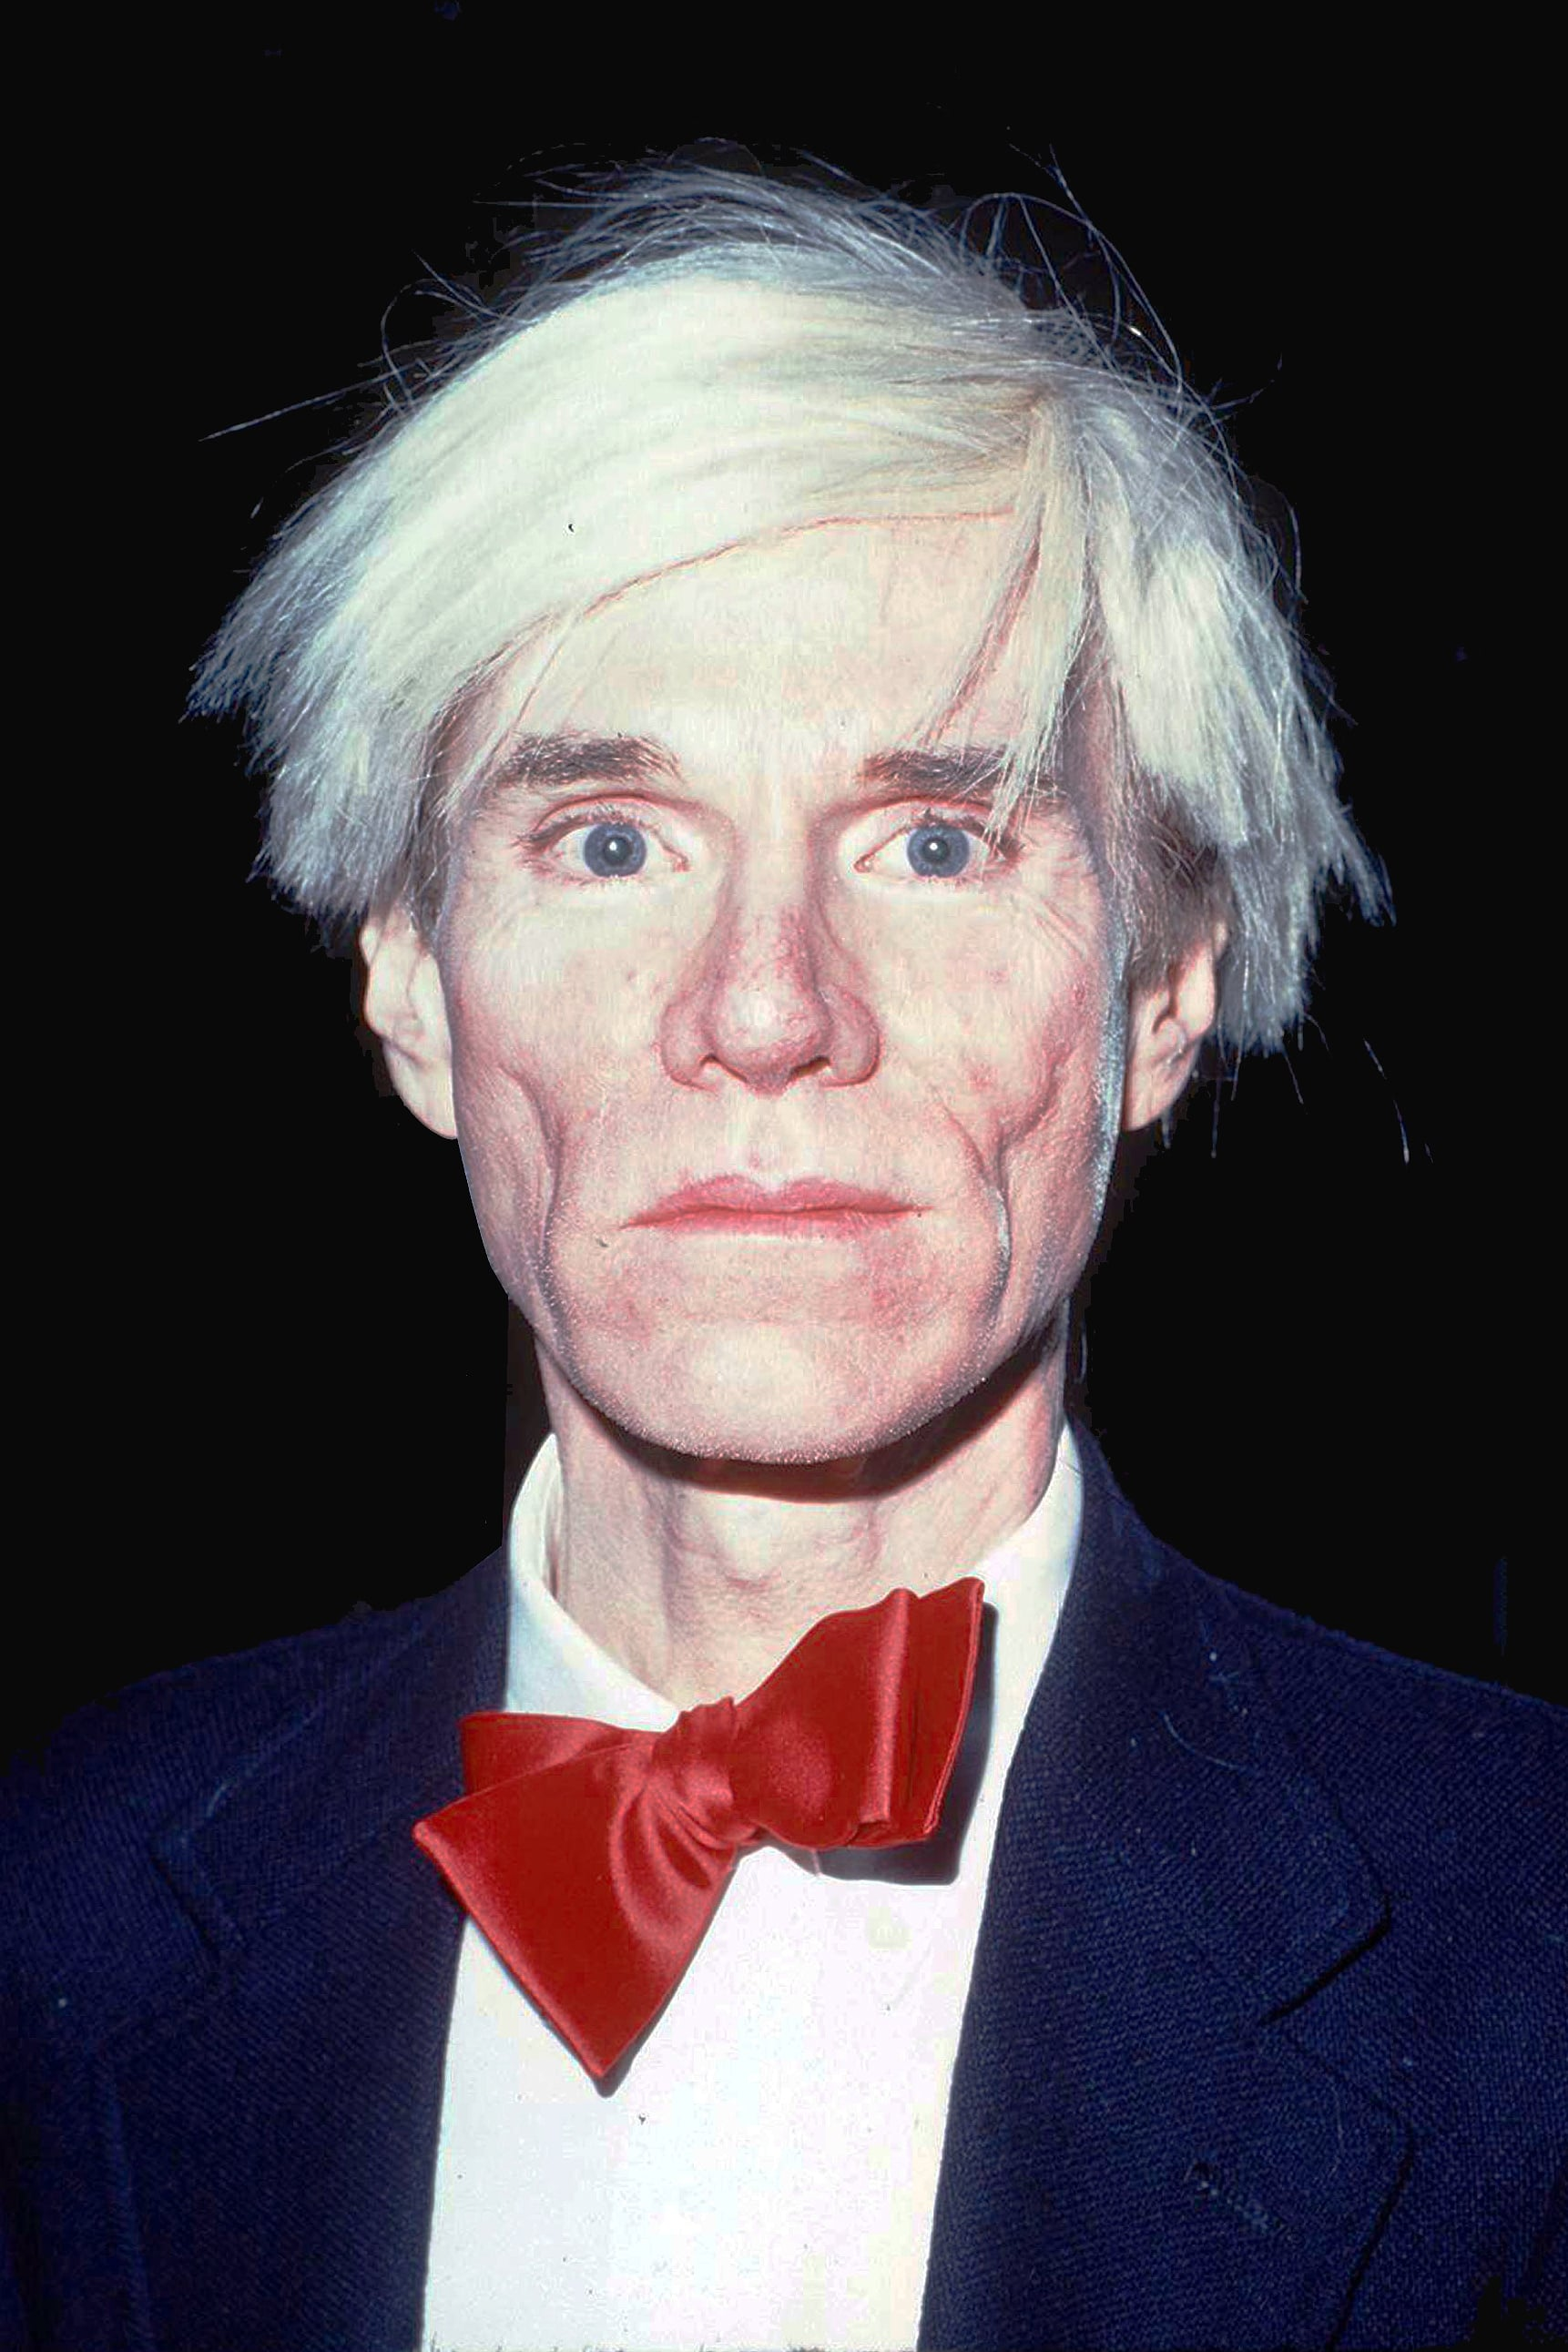 biografia andy warhol filme online. Black Bedroom Furniture Sets. Home Design Ideas